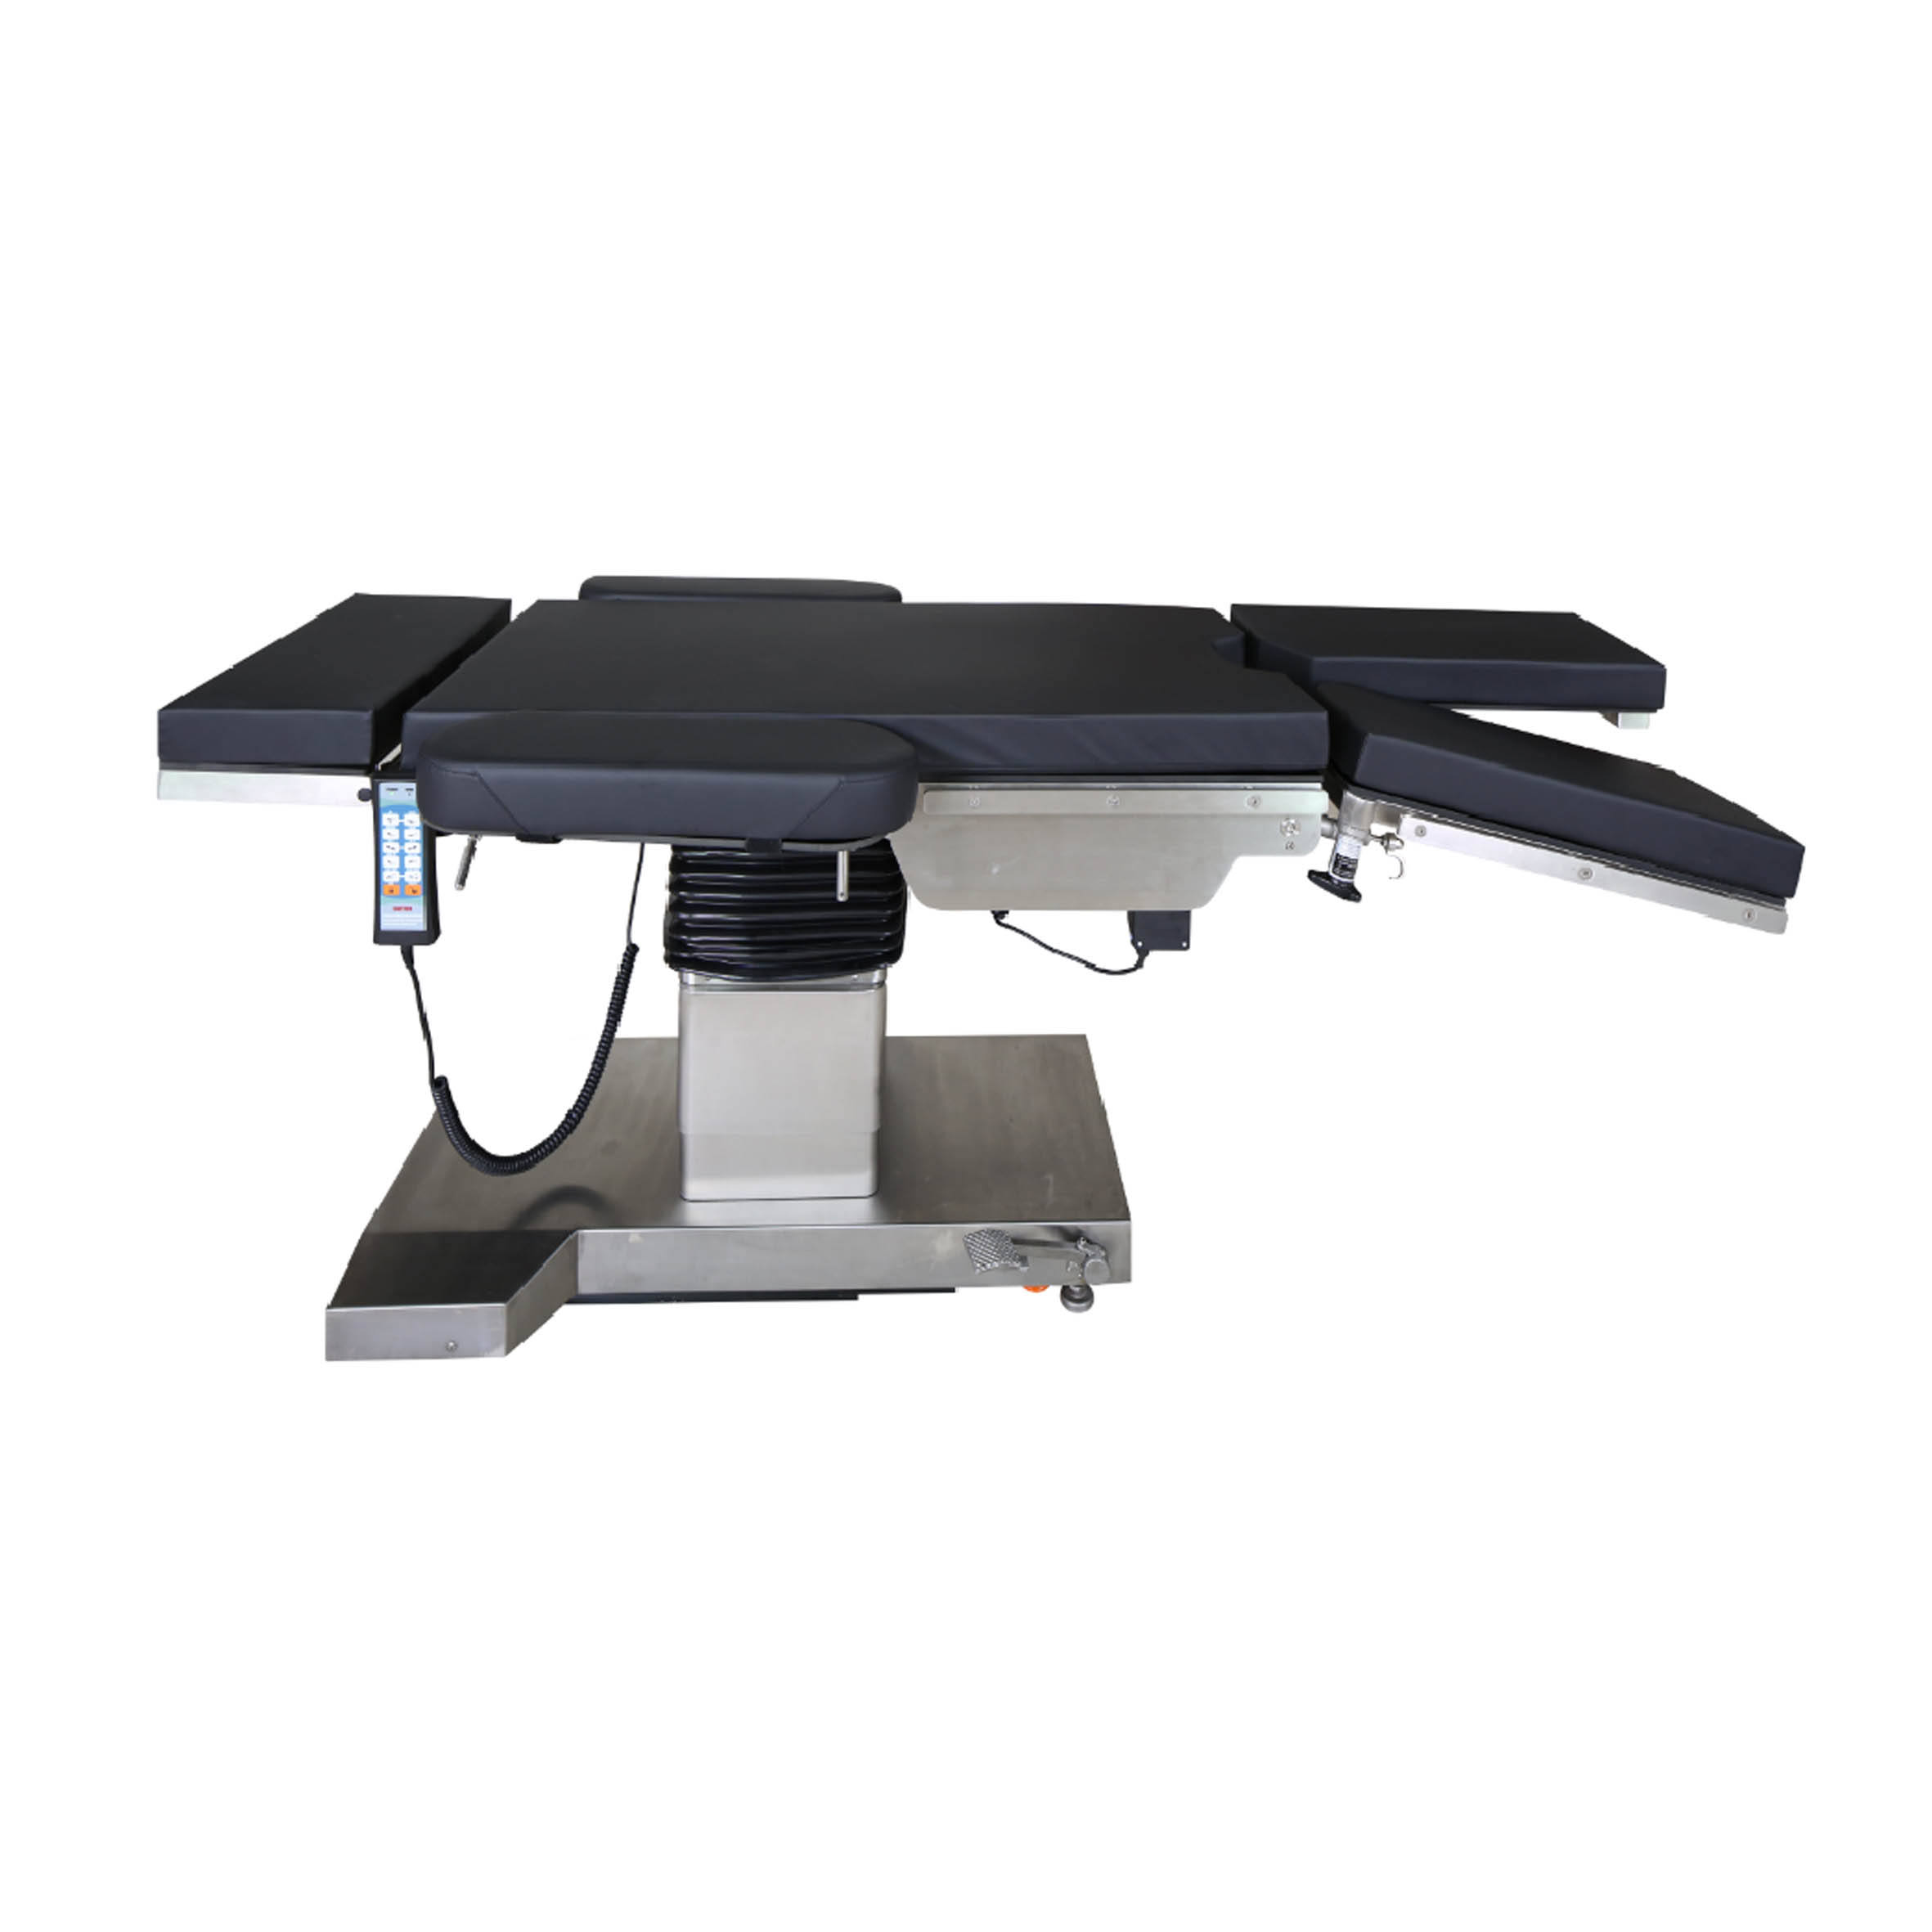 Electric Rotating Medical Table for Surgical Operating Theatre Room X Ray